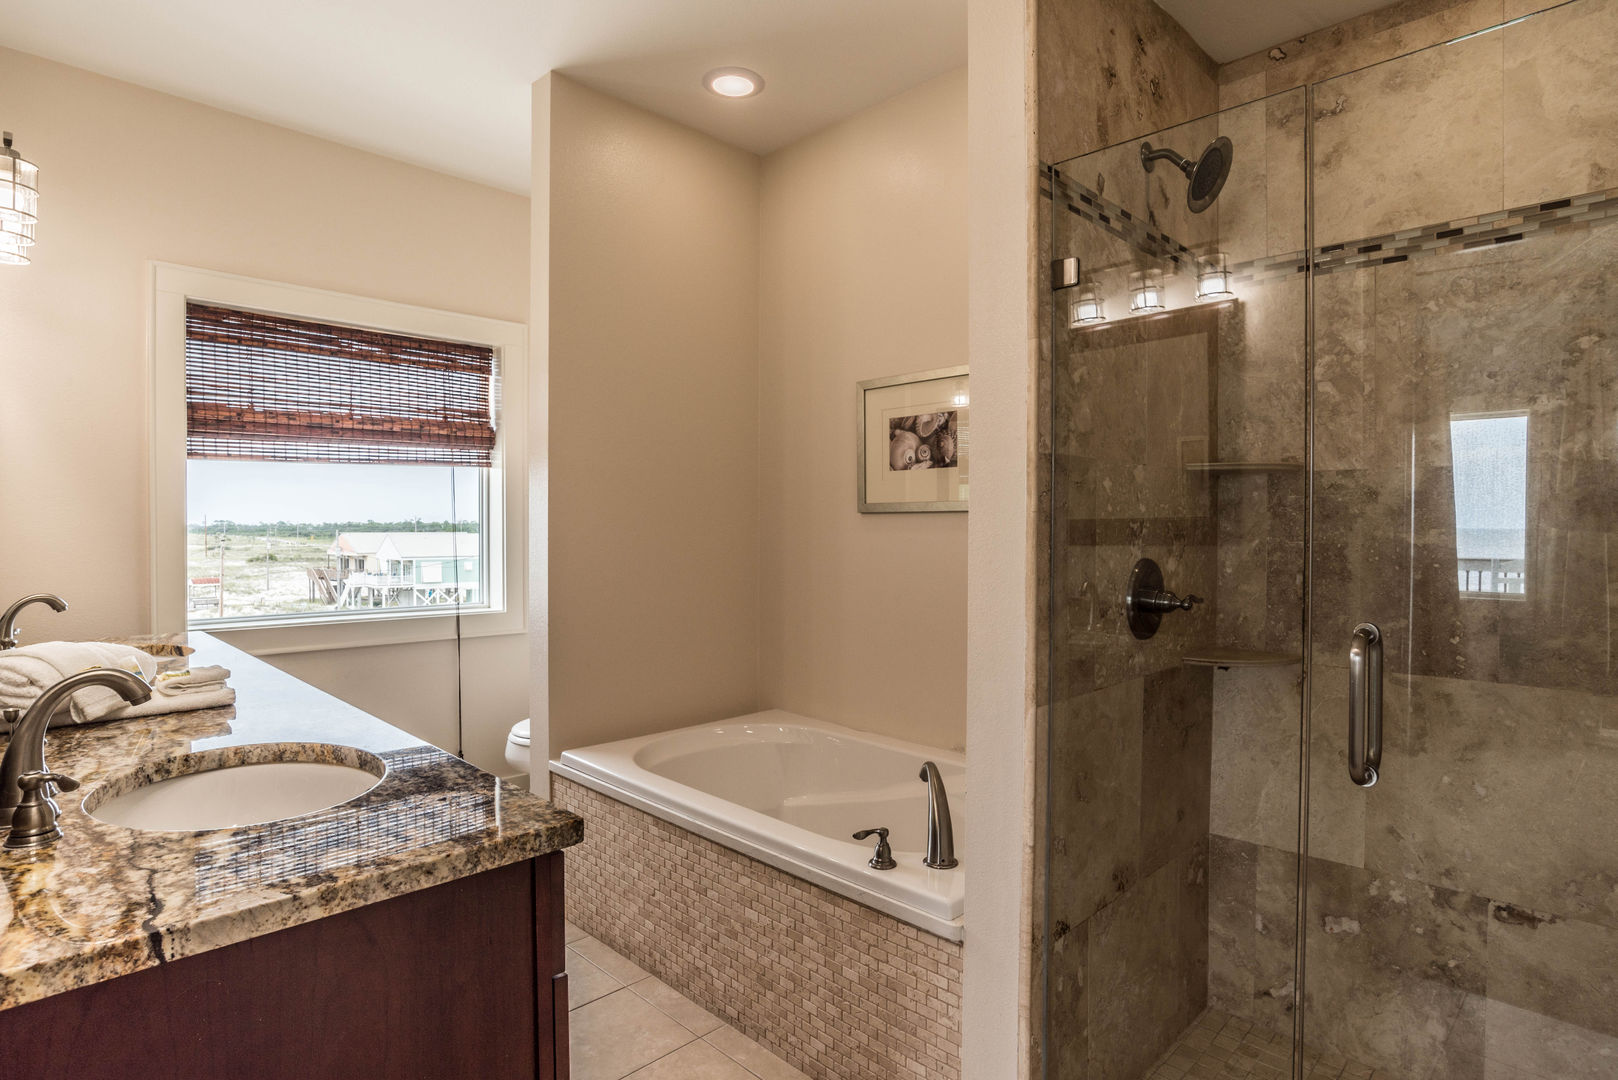 Additional Bathroom with Separate Shower and Tub